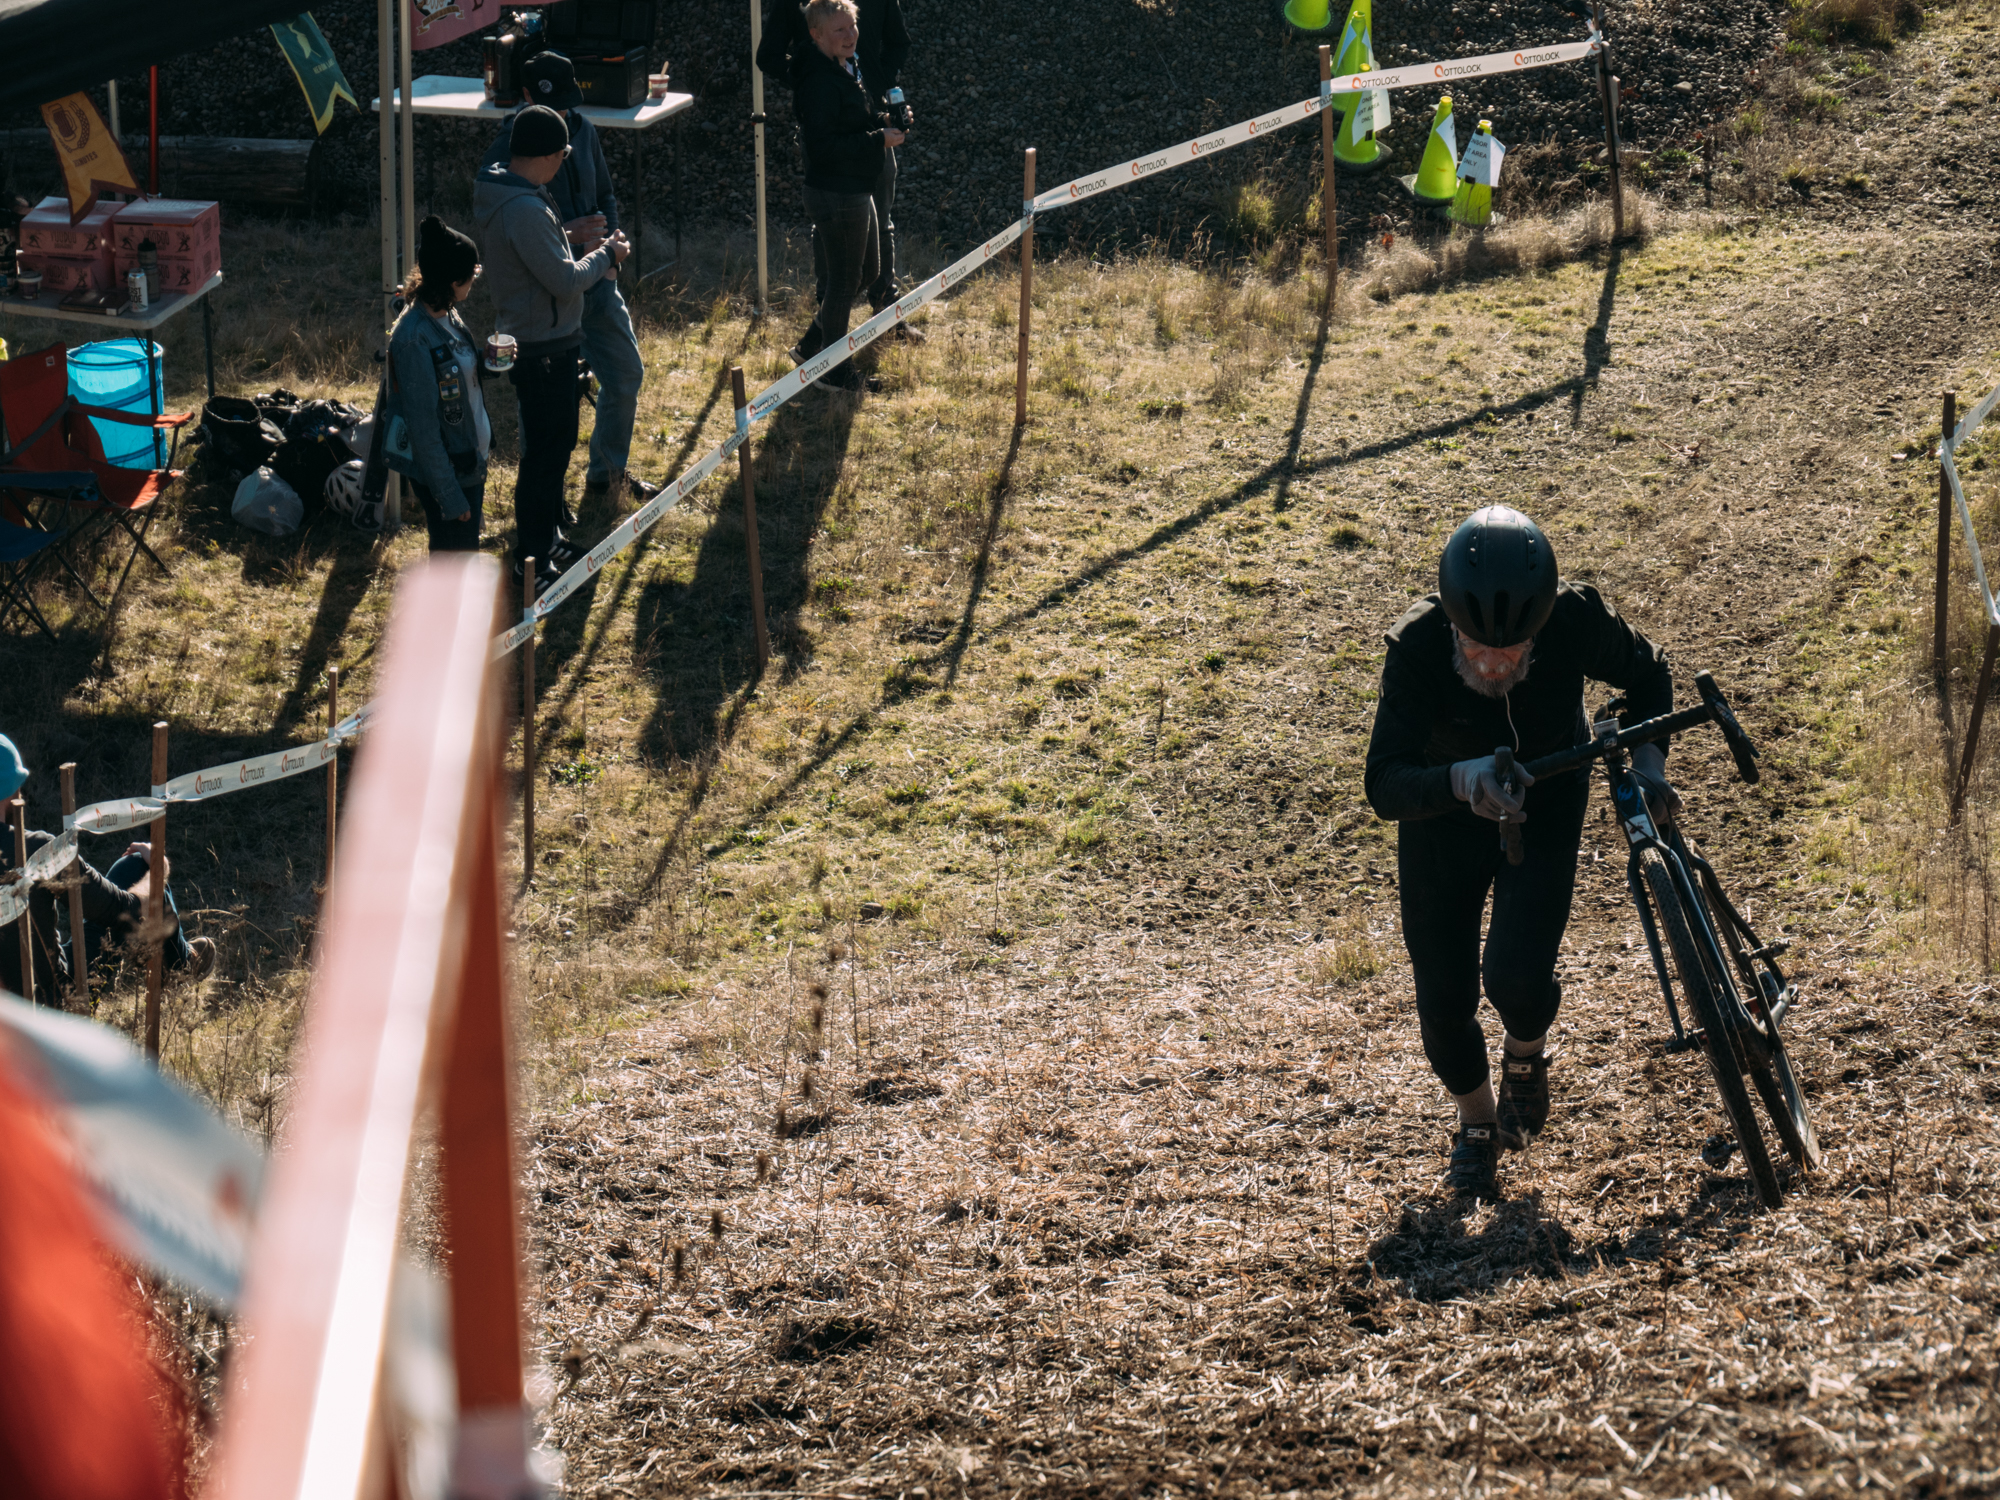 Cyclocross18_CCCX_BartonPark-mettlecycling46.jpg